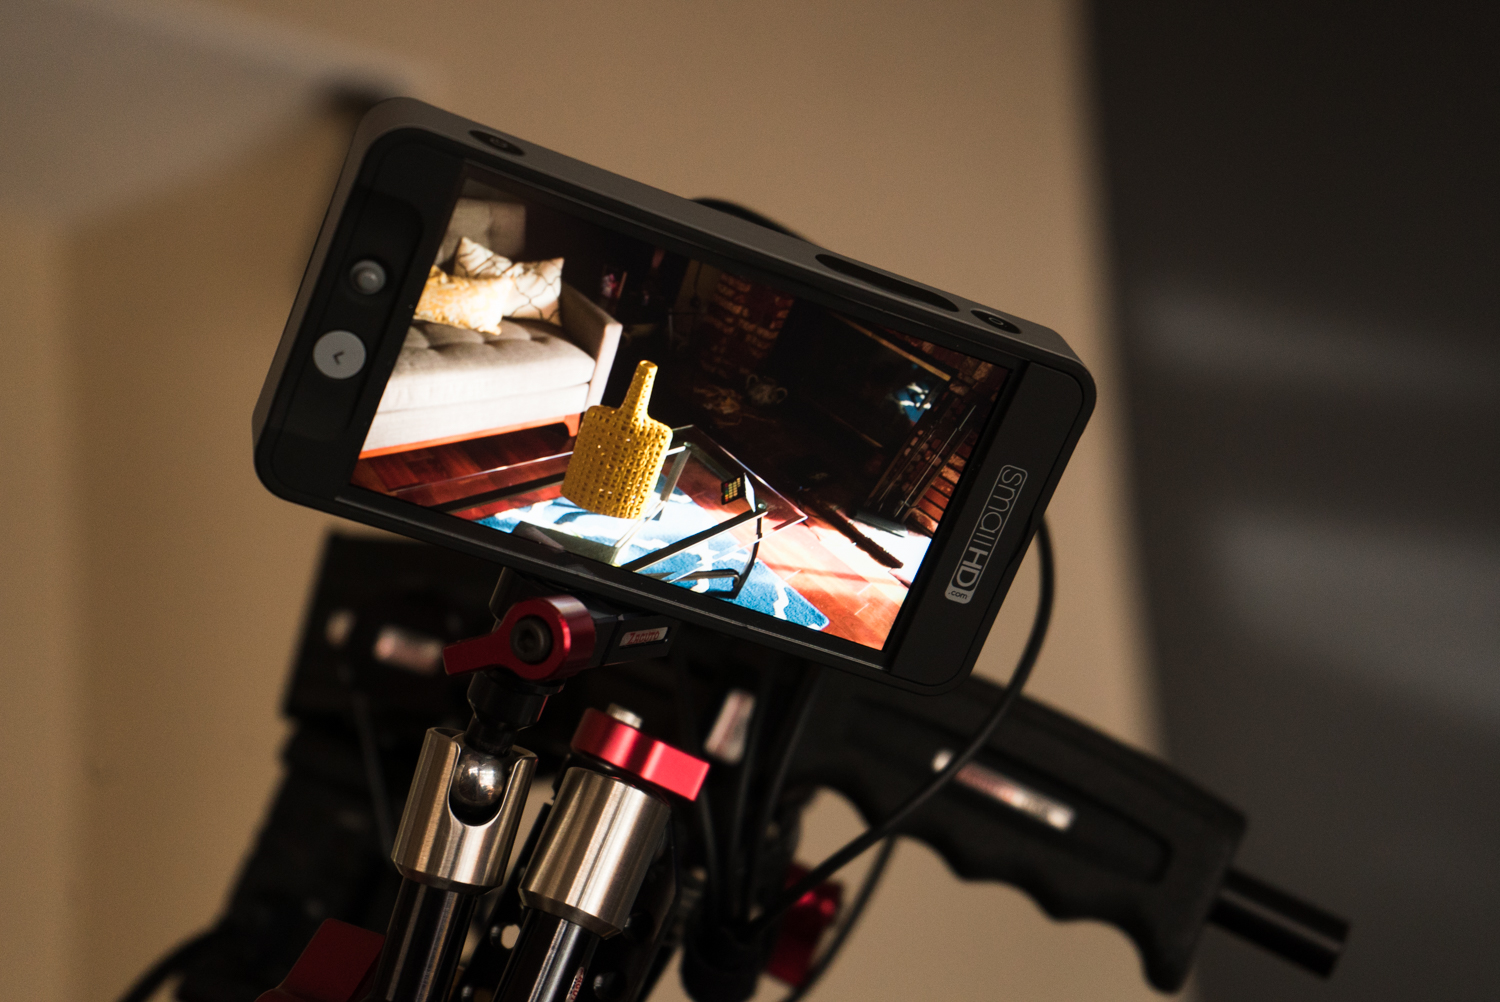 The SmallHD 502 with a custom LUT applied.